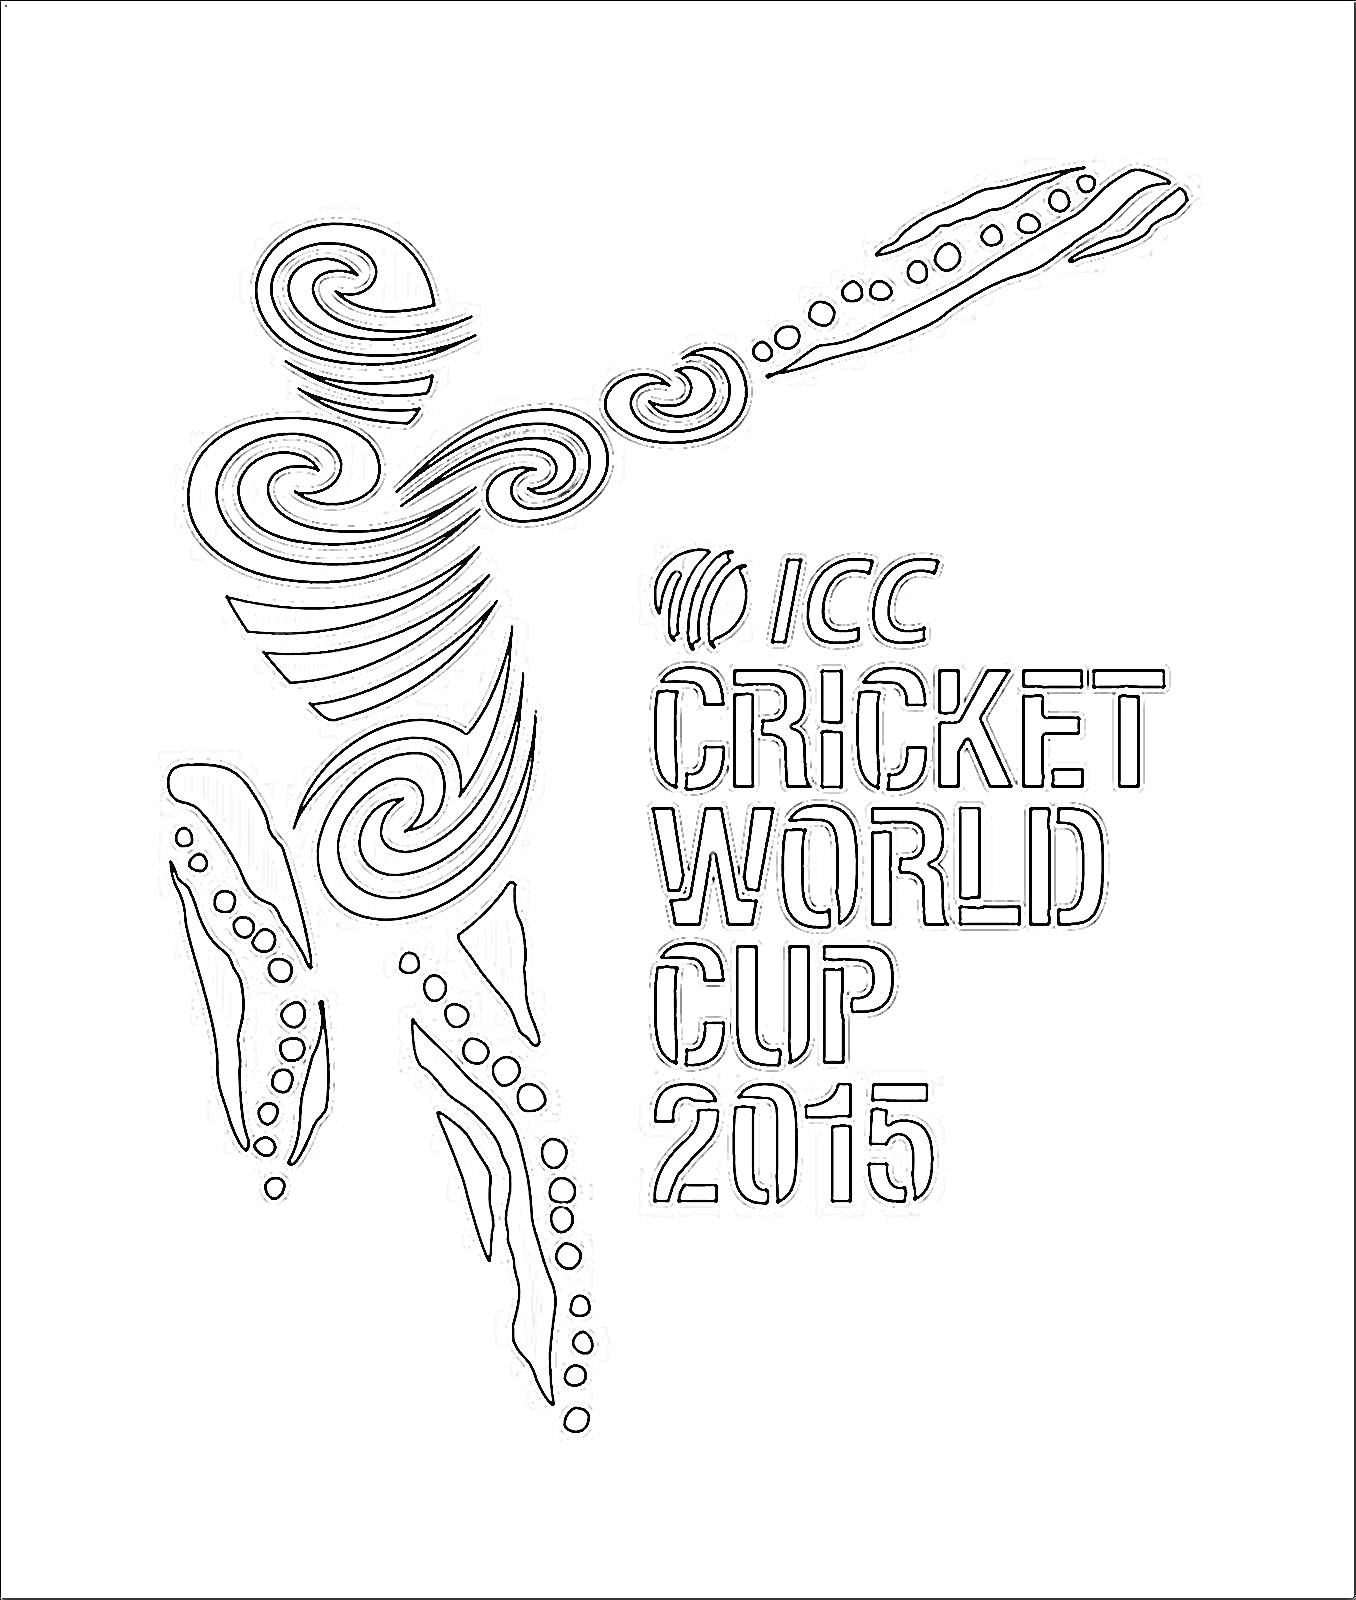 Cricket-World-Cup-2015-Logo - Coloring Kids